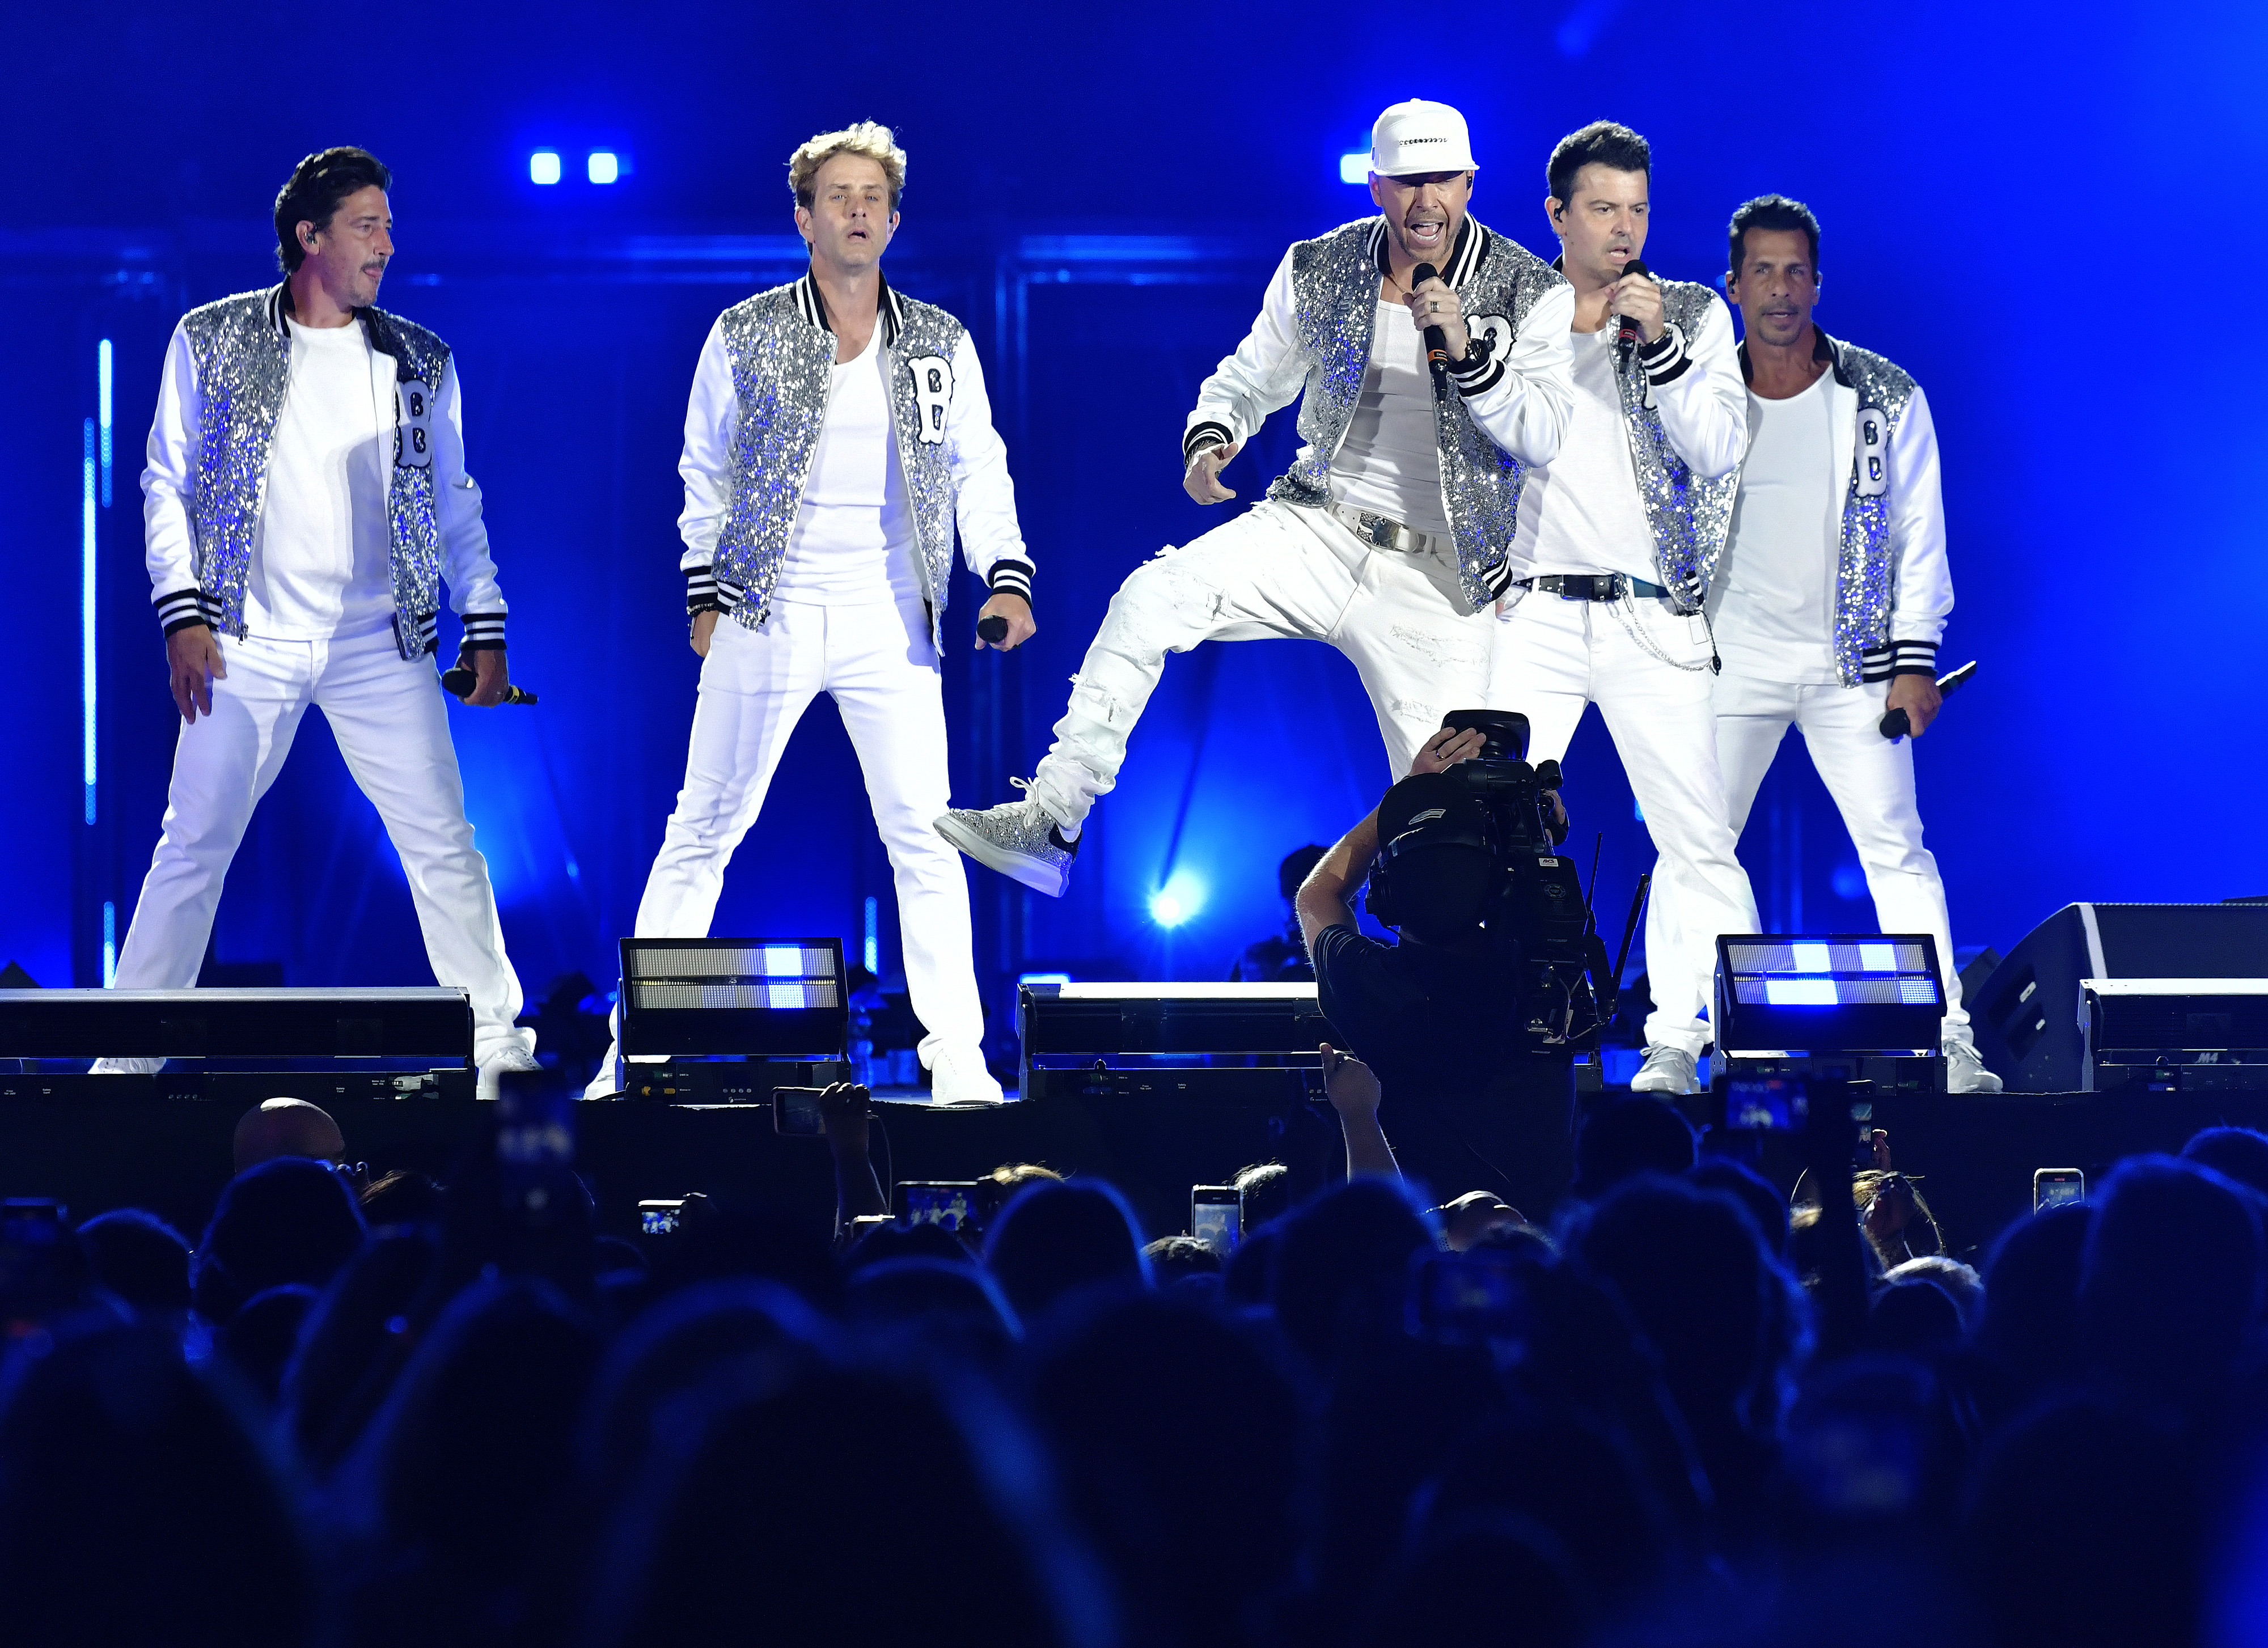 New Kids on the Block in concert at Fenway Park on August 6, 2021.